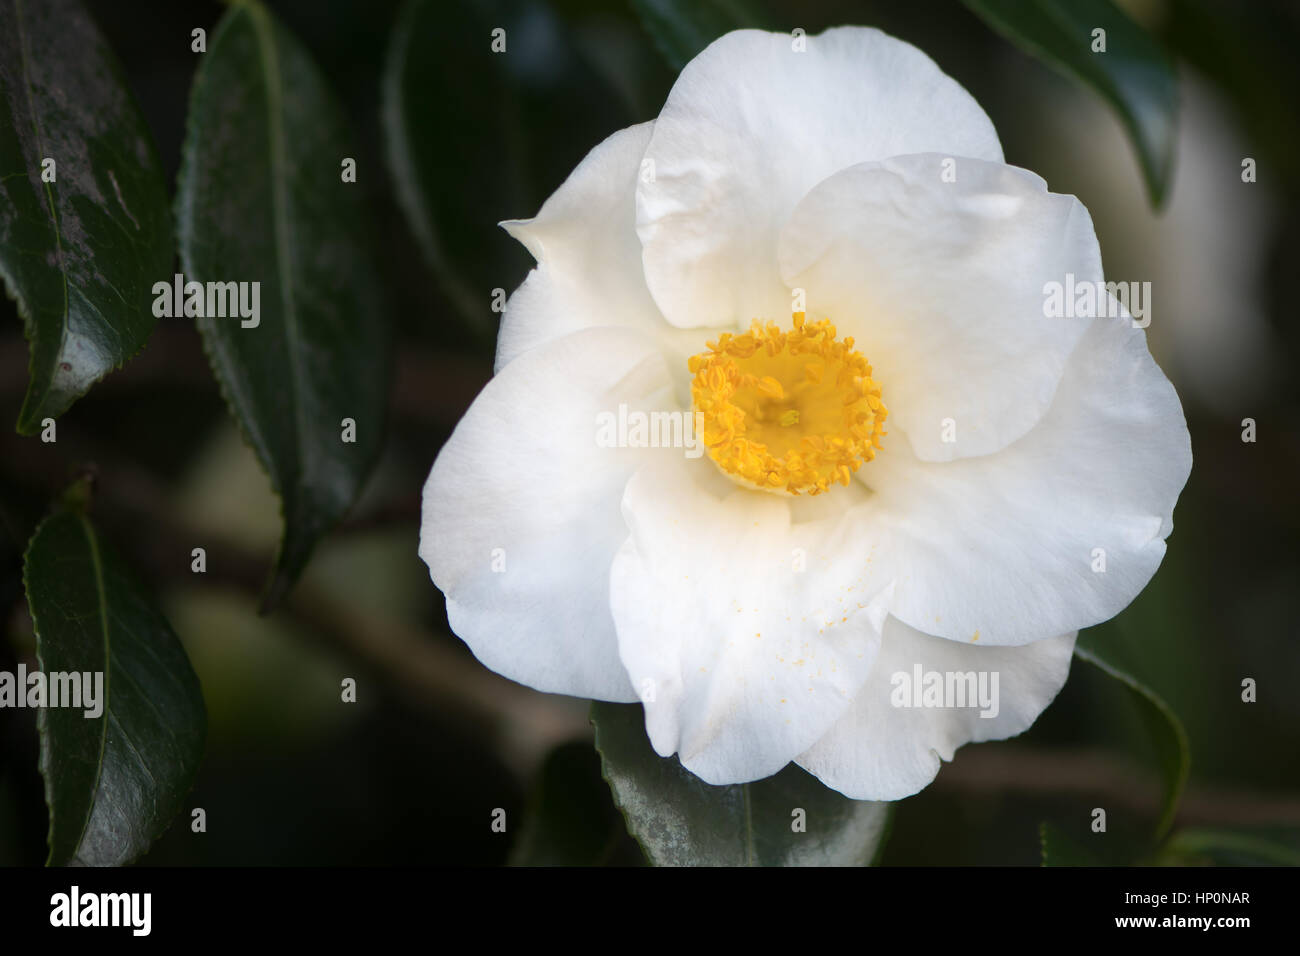 White camellia in flower with yellow stamens single flower with white camellia in flower with yellow stamens single flower with seven regular petals with prominent display of stamens and pistils mightylinksfo